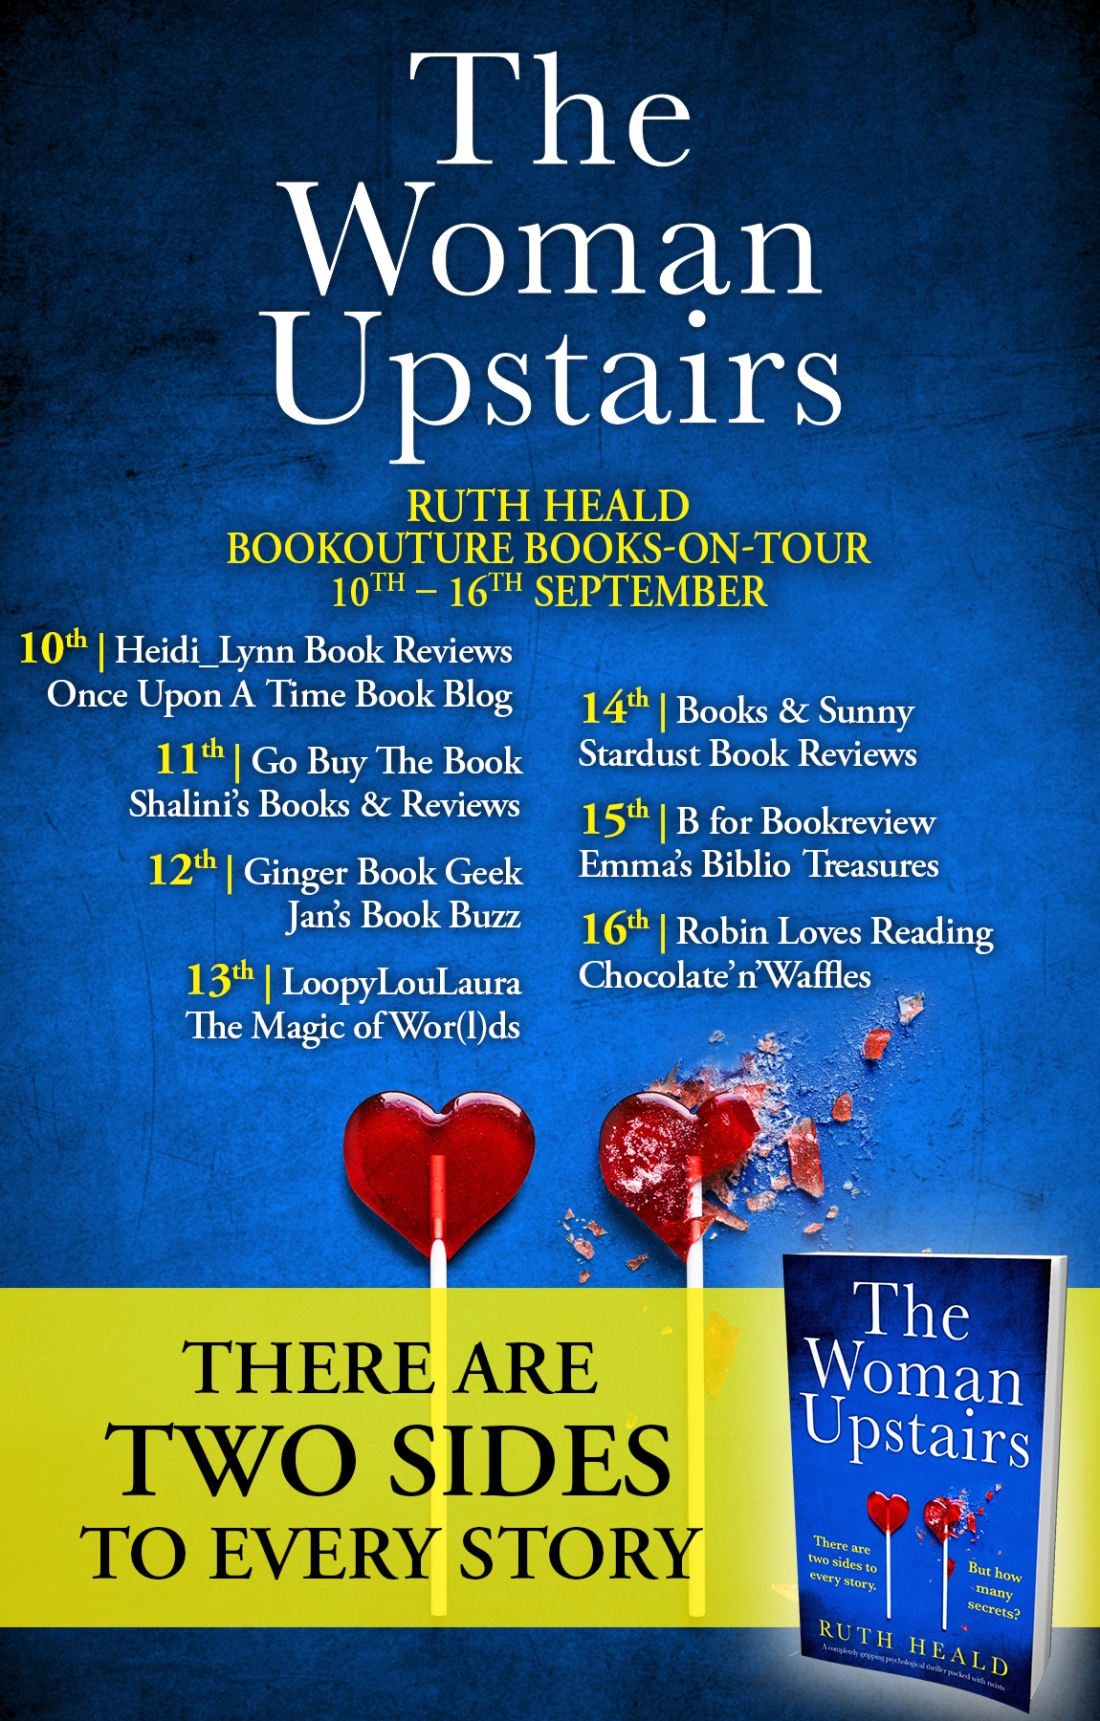 The Woman Upstairs - Blog Tour